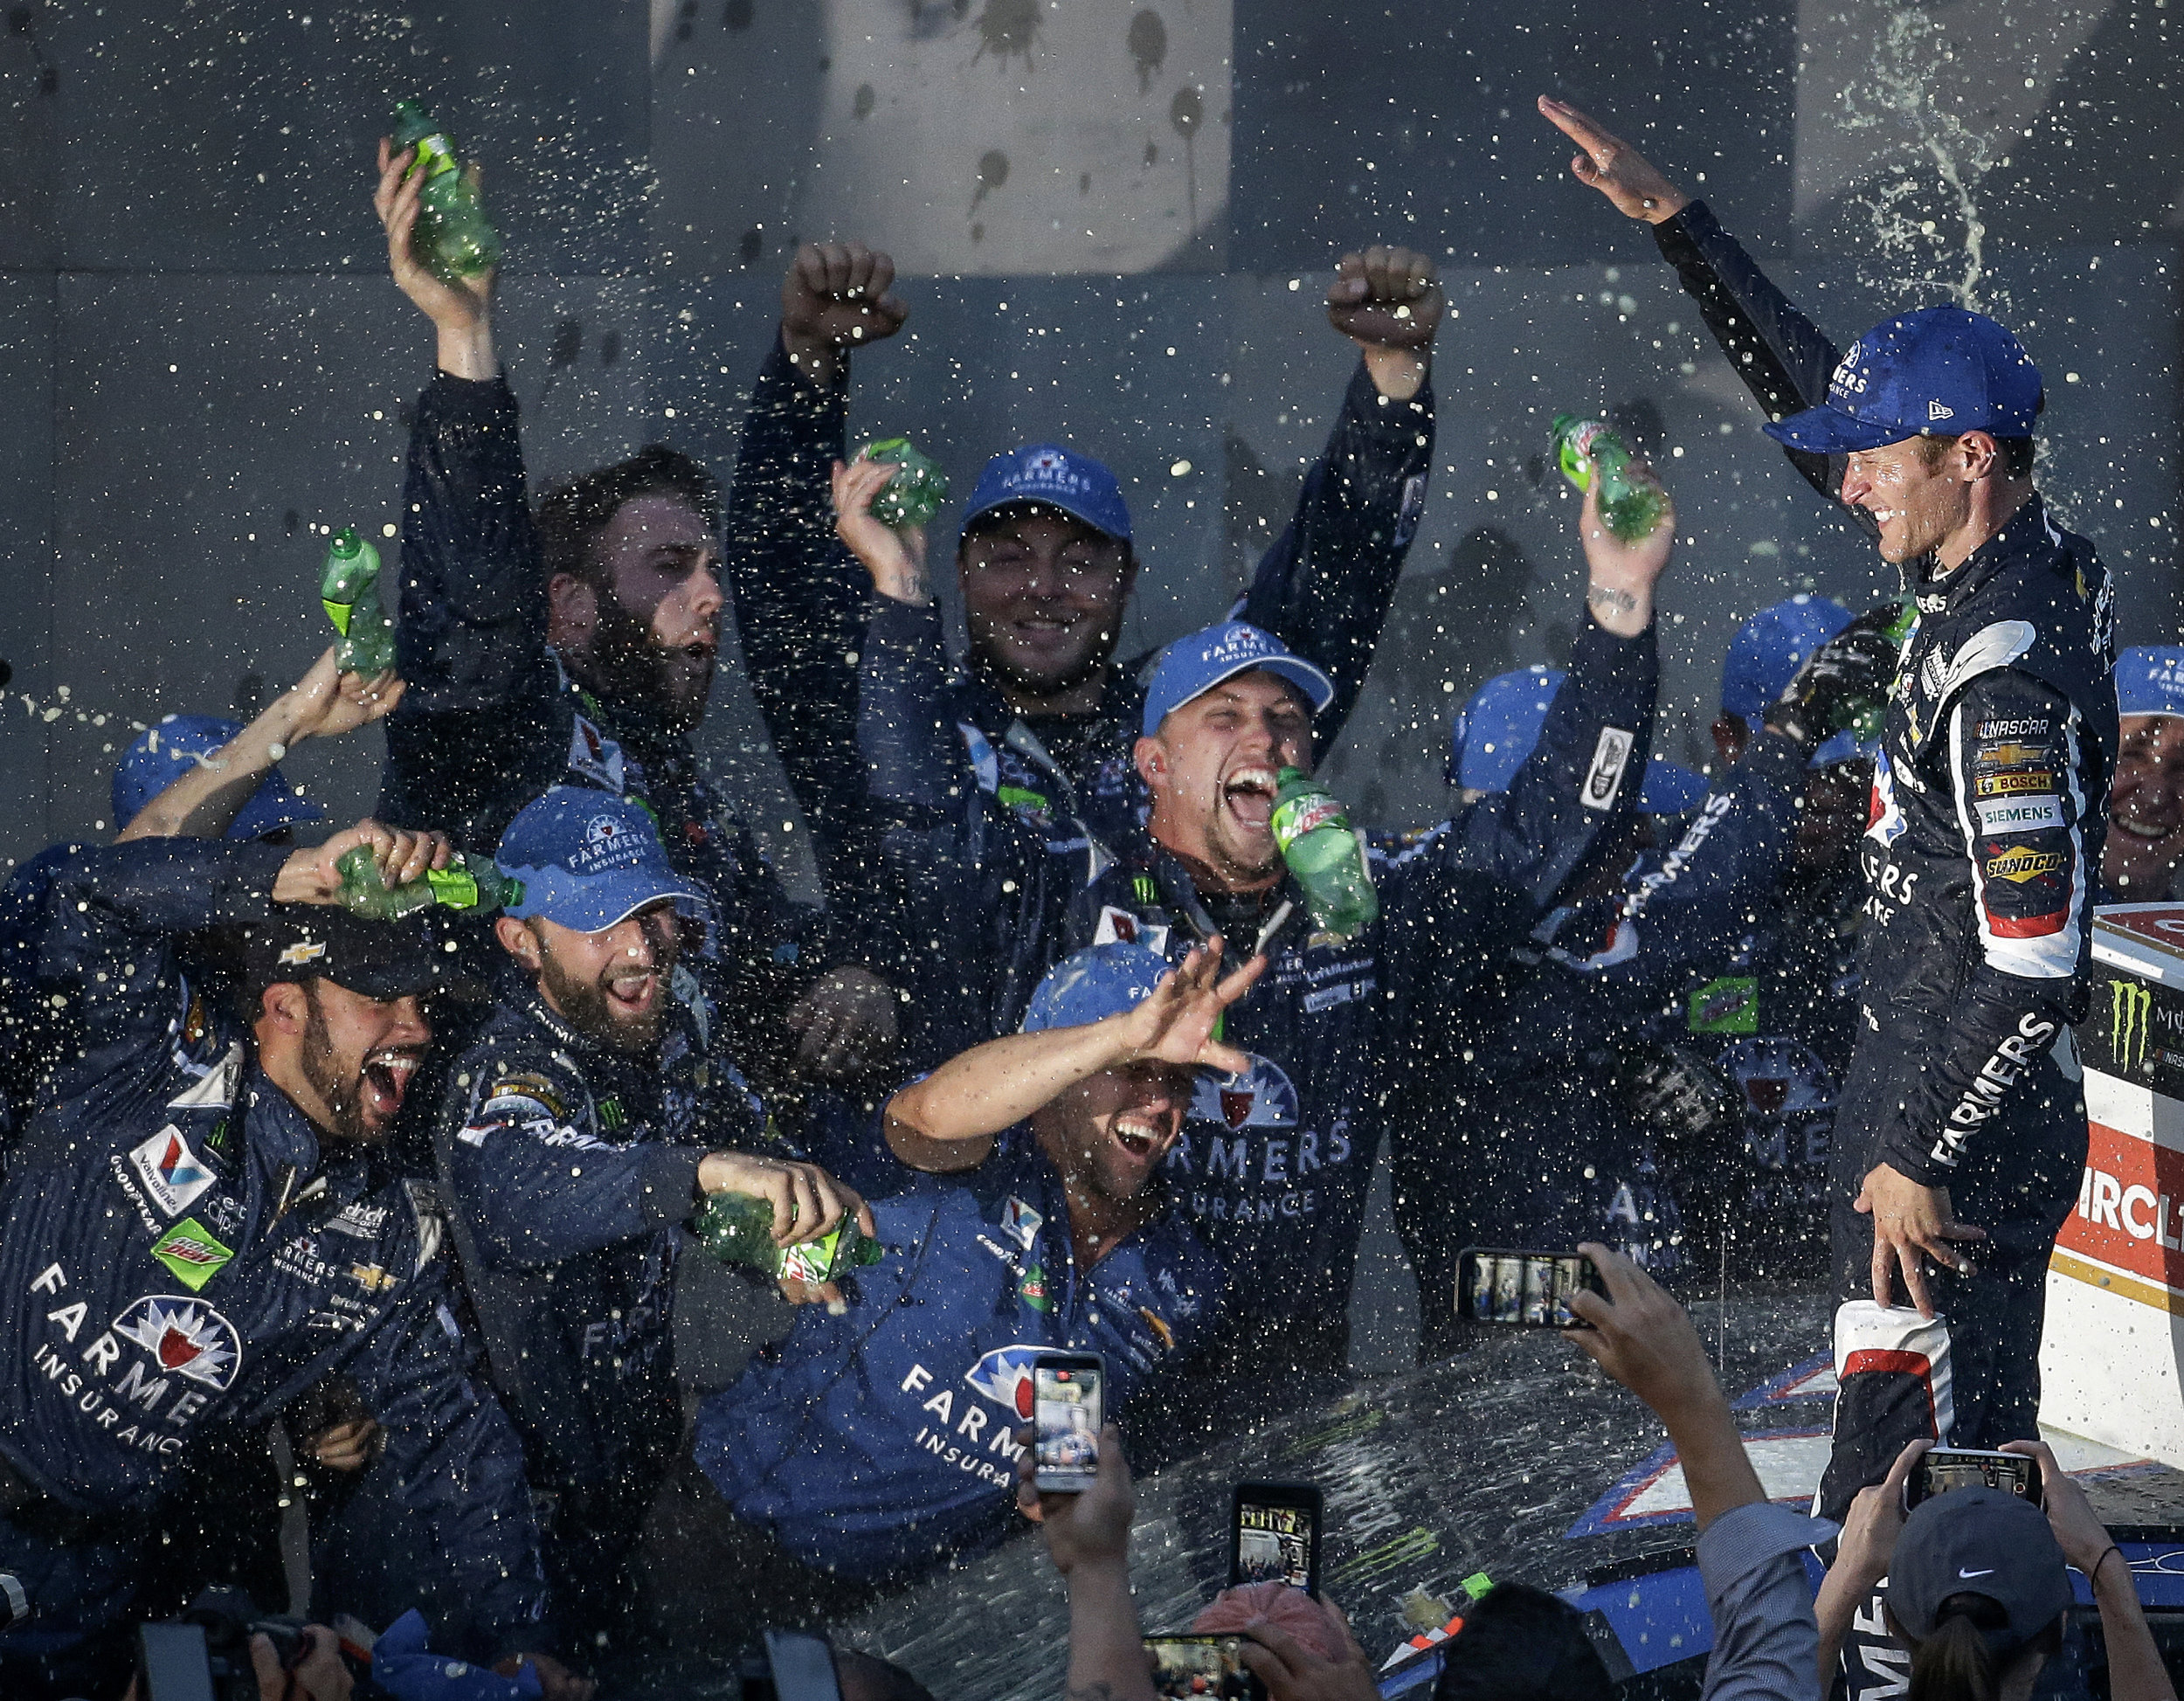 NASCAR driver Kasey Kahne and his crew celebrate their win with a Mountain Dew shower at the Brickyard 400 at Indianapolis Motor Speedway on Sunday, July 23, 2017. Kahne's win came after a grueling race with a rain delay, a record 14 cautions and 7 lead changes.